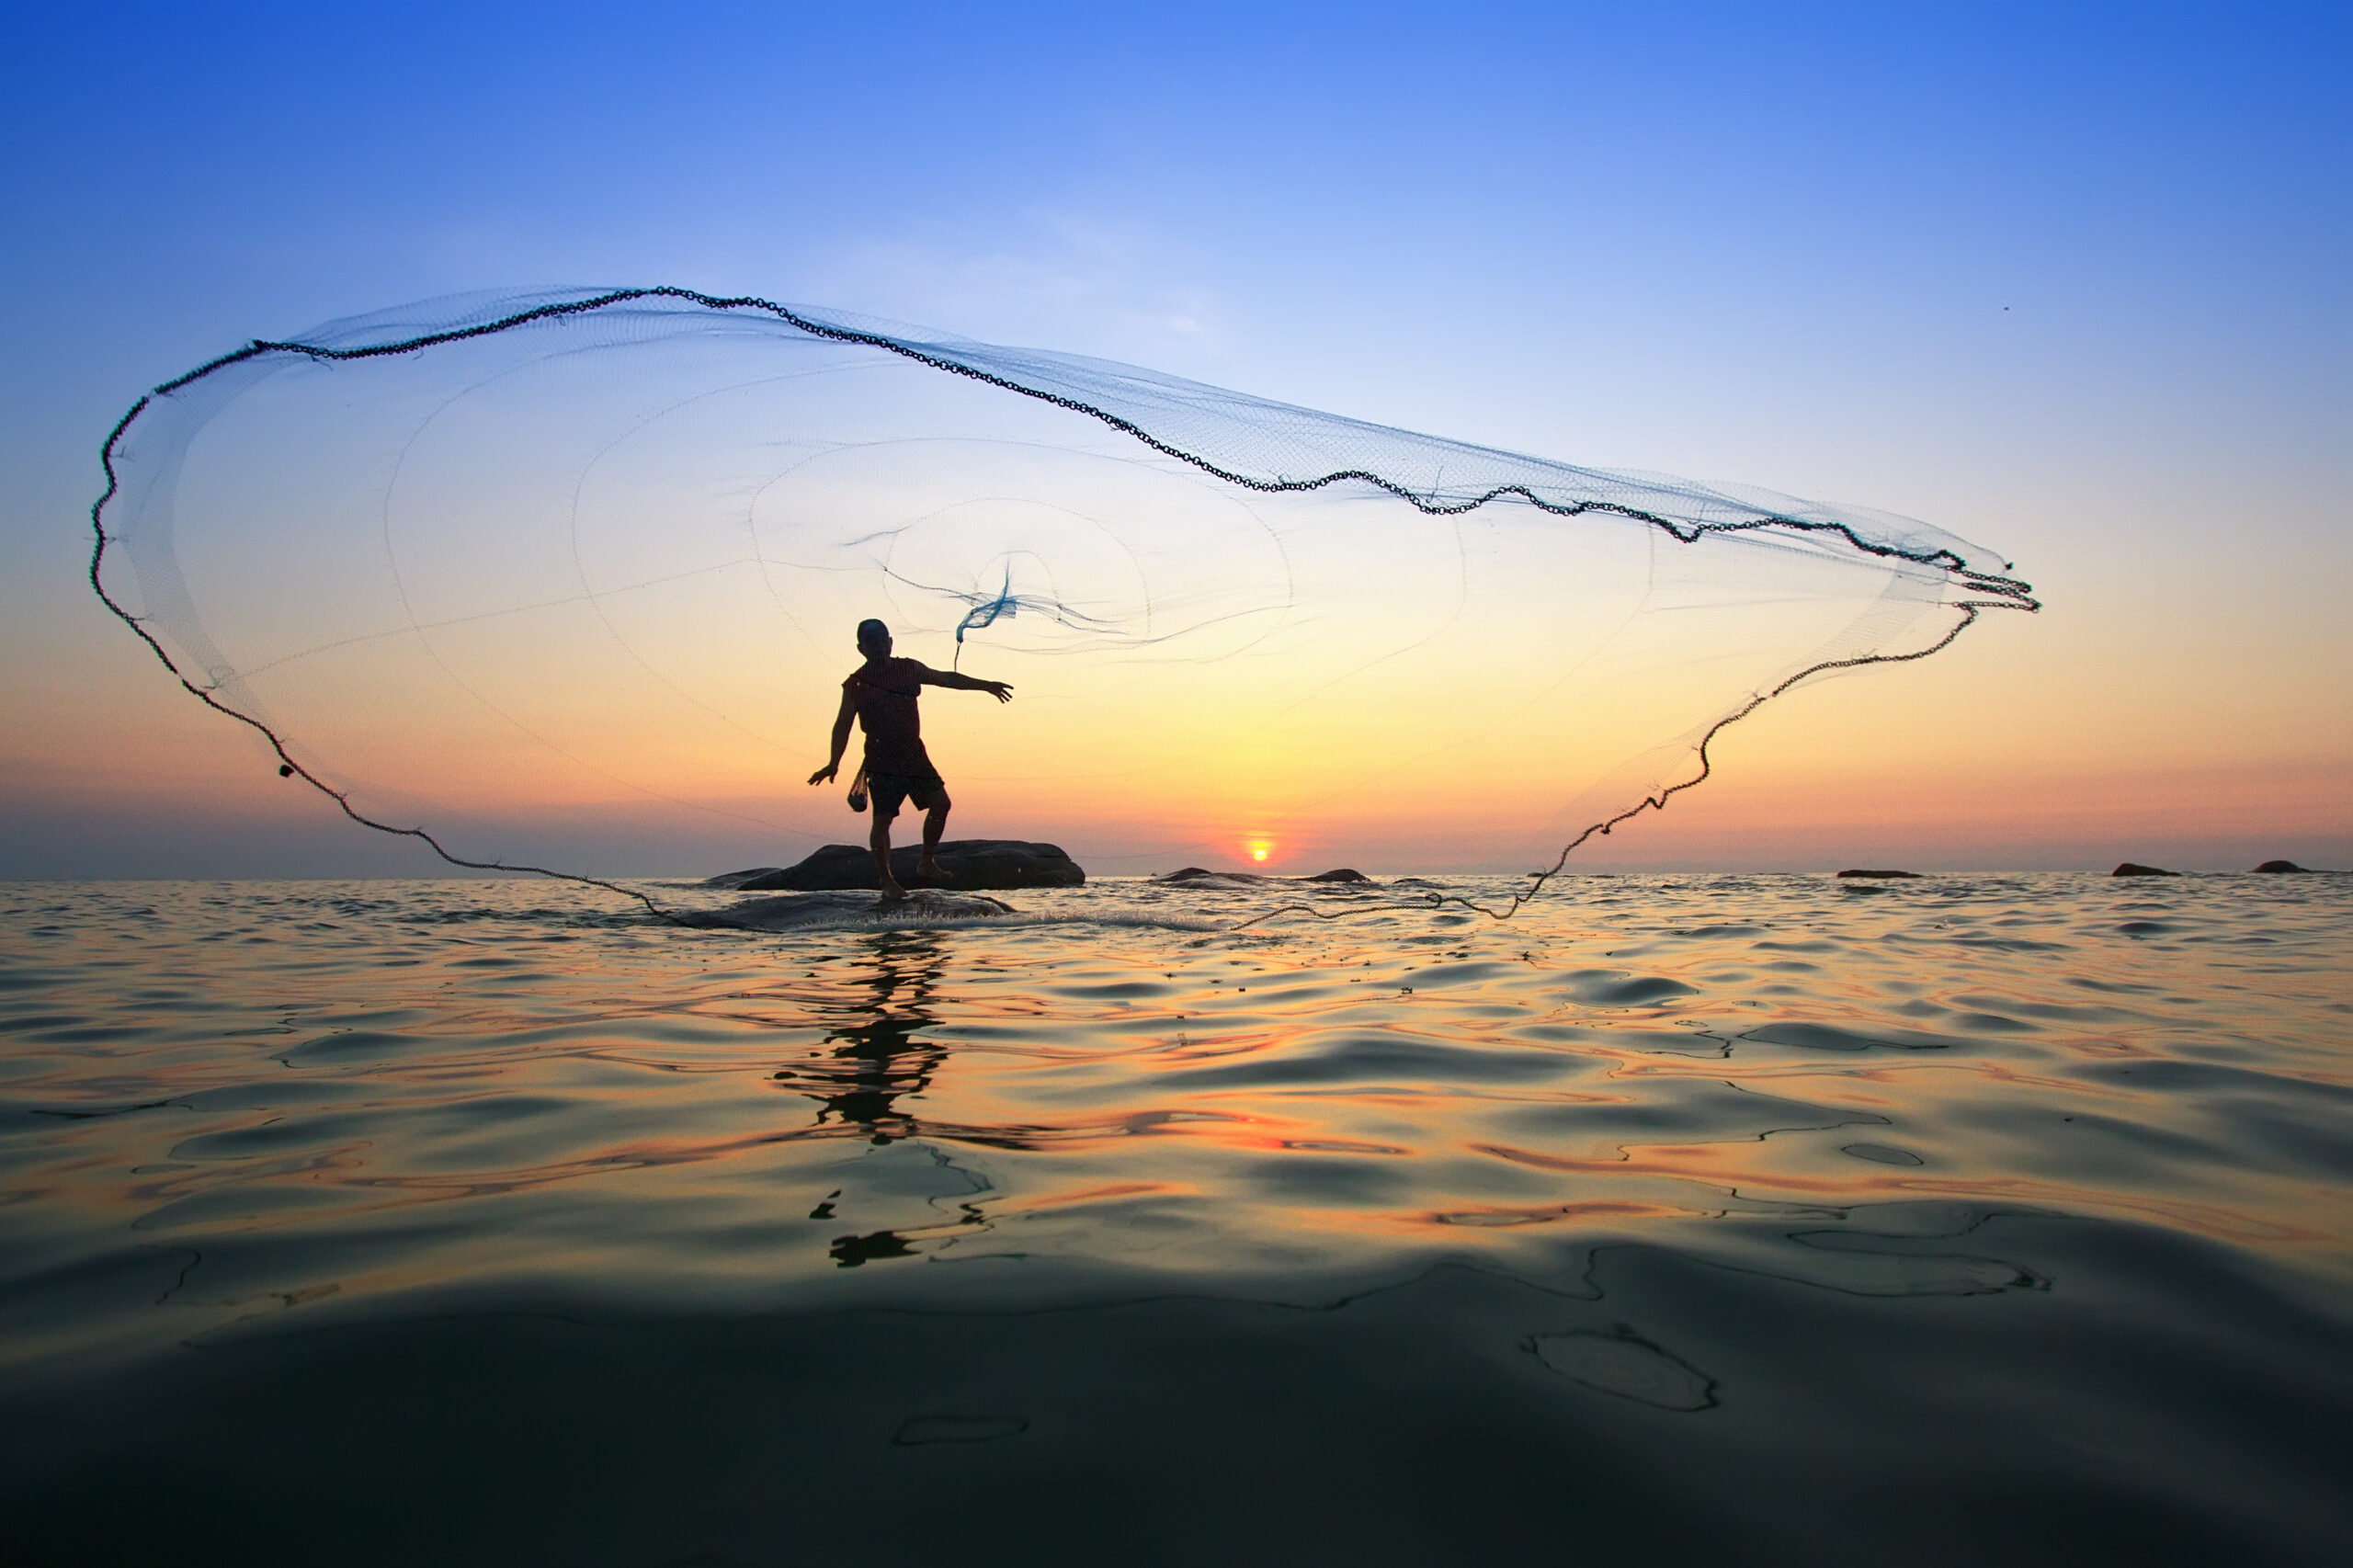 Casting Our Nets